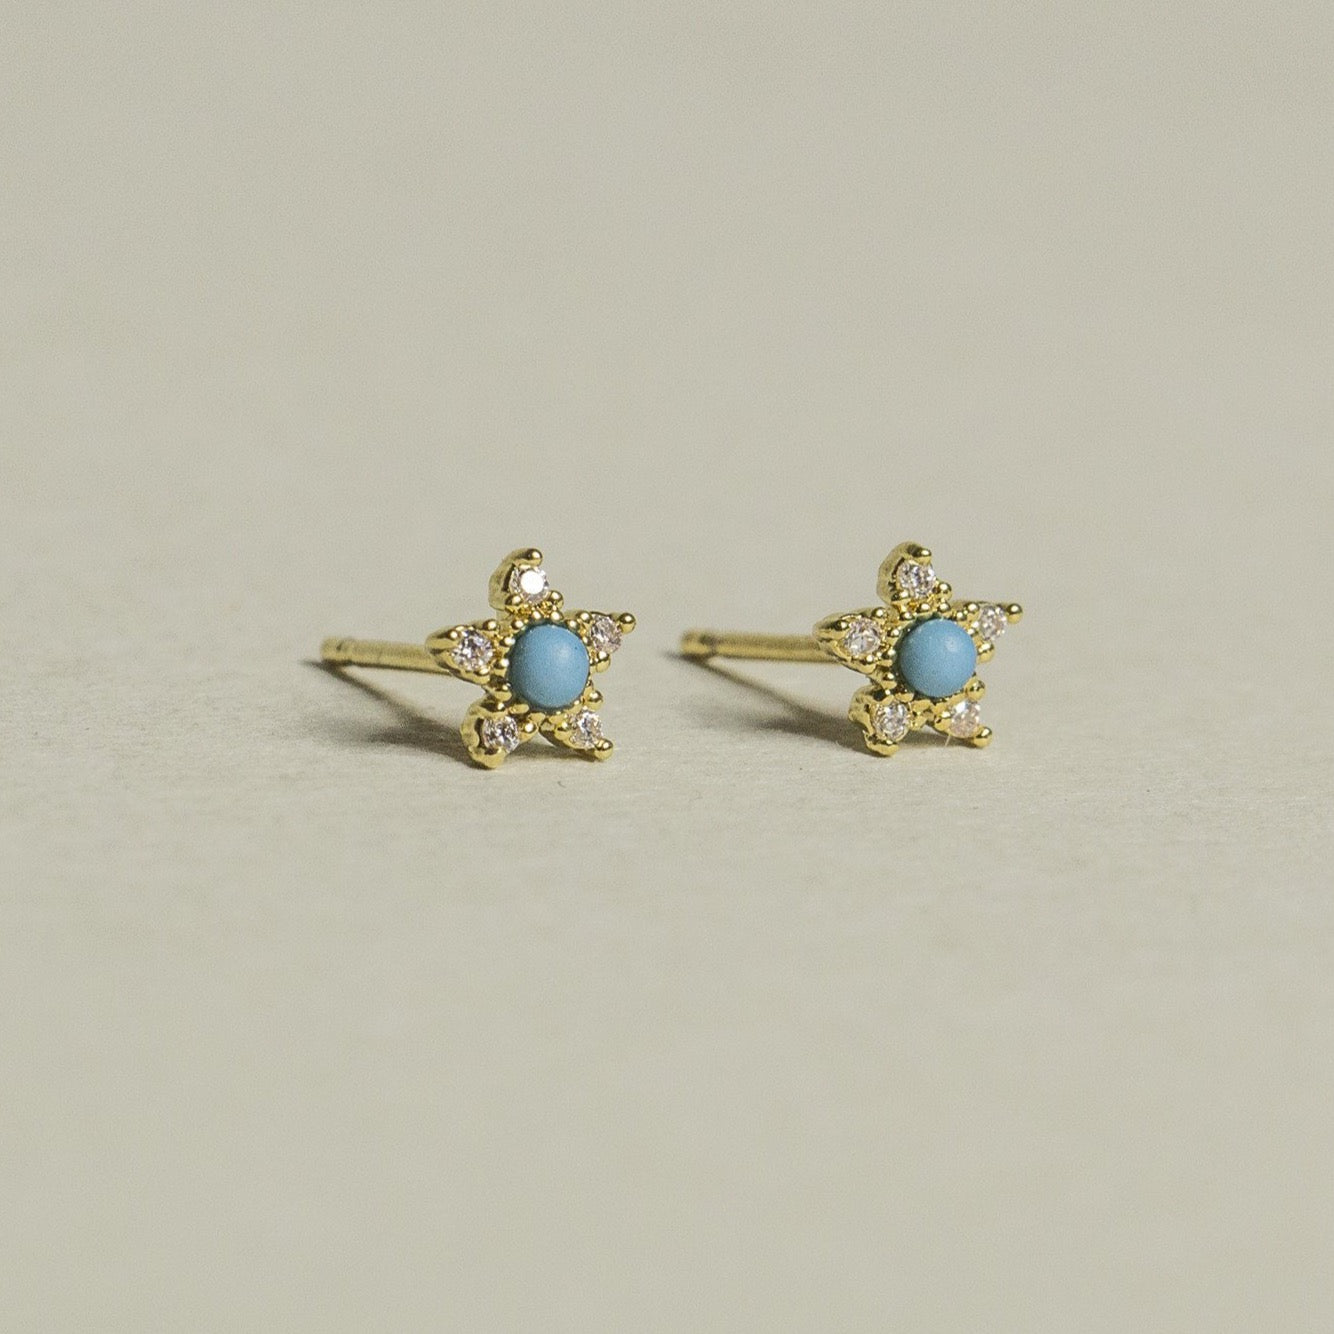 Tai Gold-Plated Silver Turquoise Flower Stud Earrings